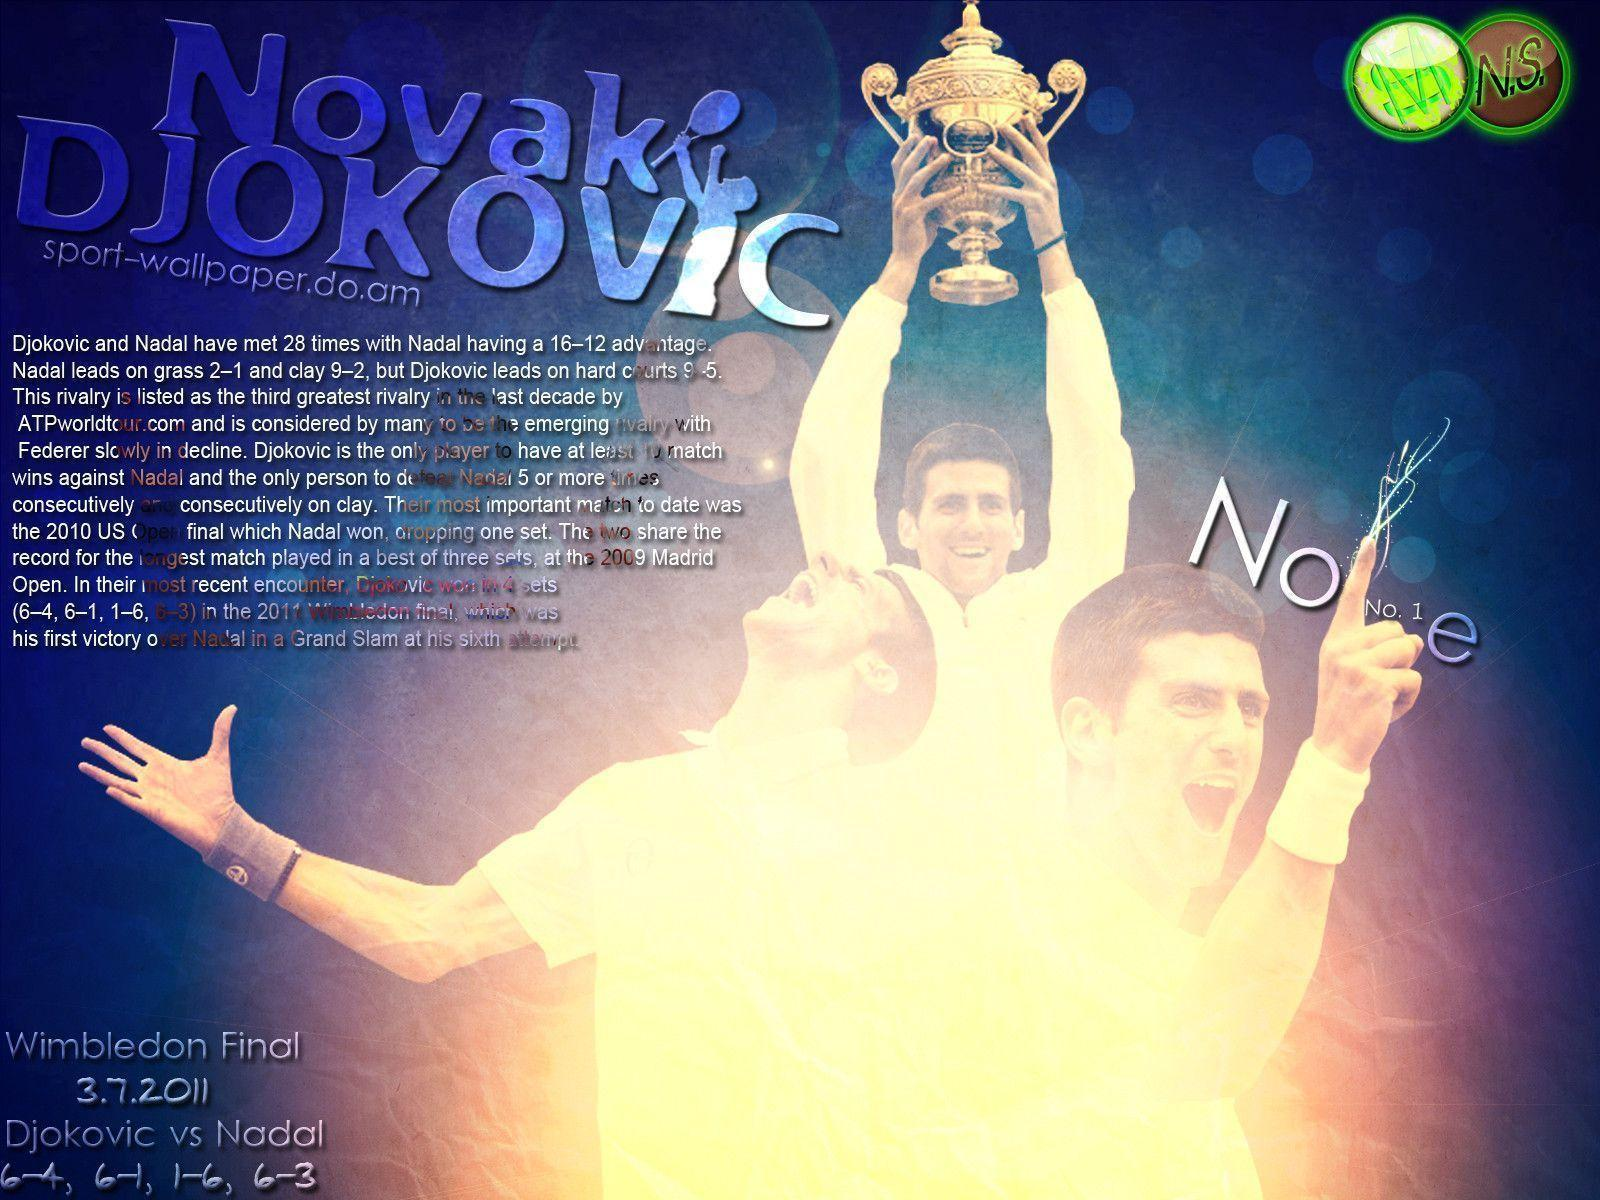 Novak Djokovic Wallpaper By WWW.SPORT-WALLPAPER.DO.AM 60102 ...